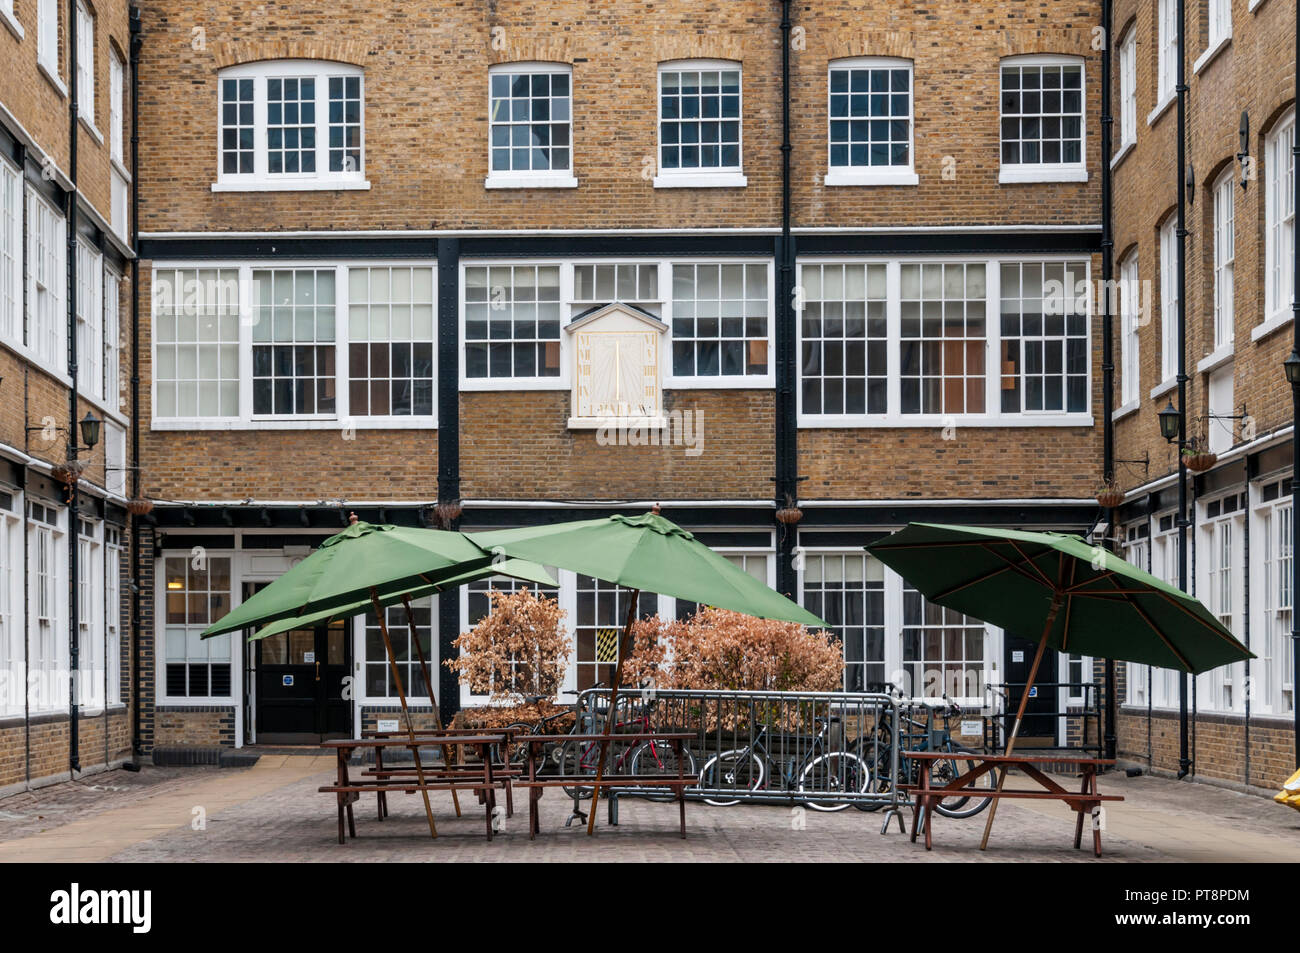 Sundial Court, originally part of Whitbread's first brewery, now provides halls of residence for the Guildhall School of Music and Drama. - Stock Image